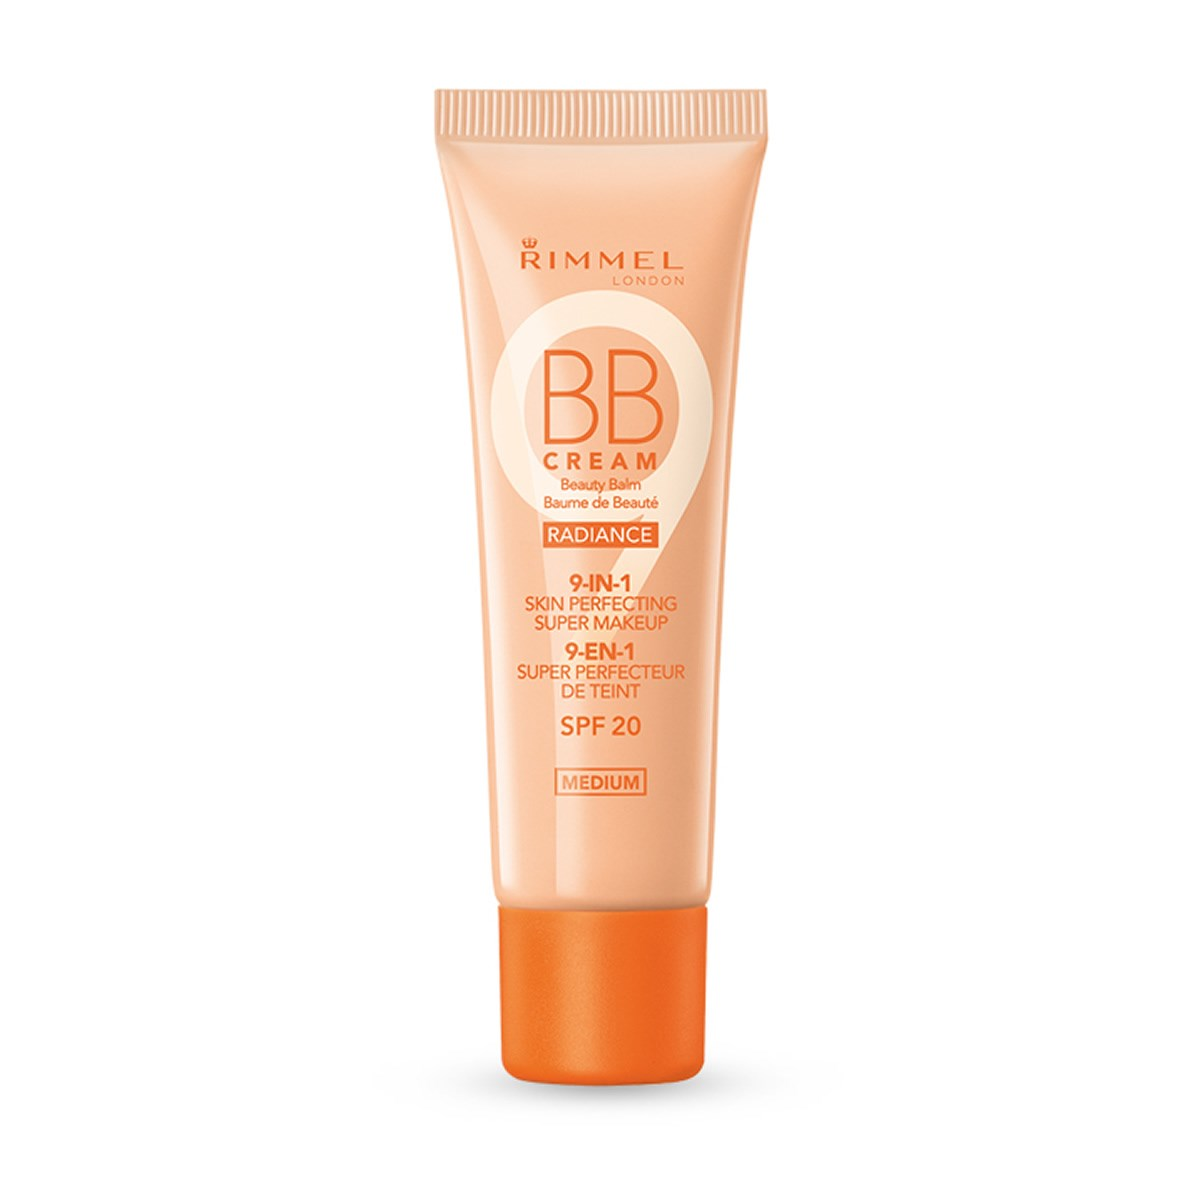 Rimmel BB Cream Radiance 9-in-1 Skin Perfecting Super Make-up